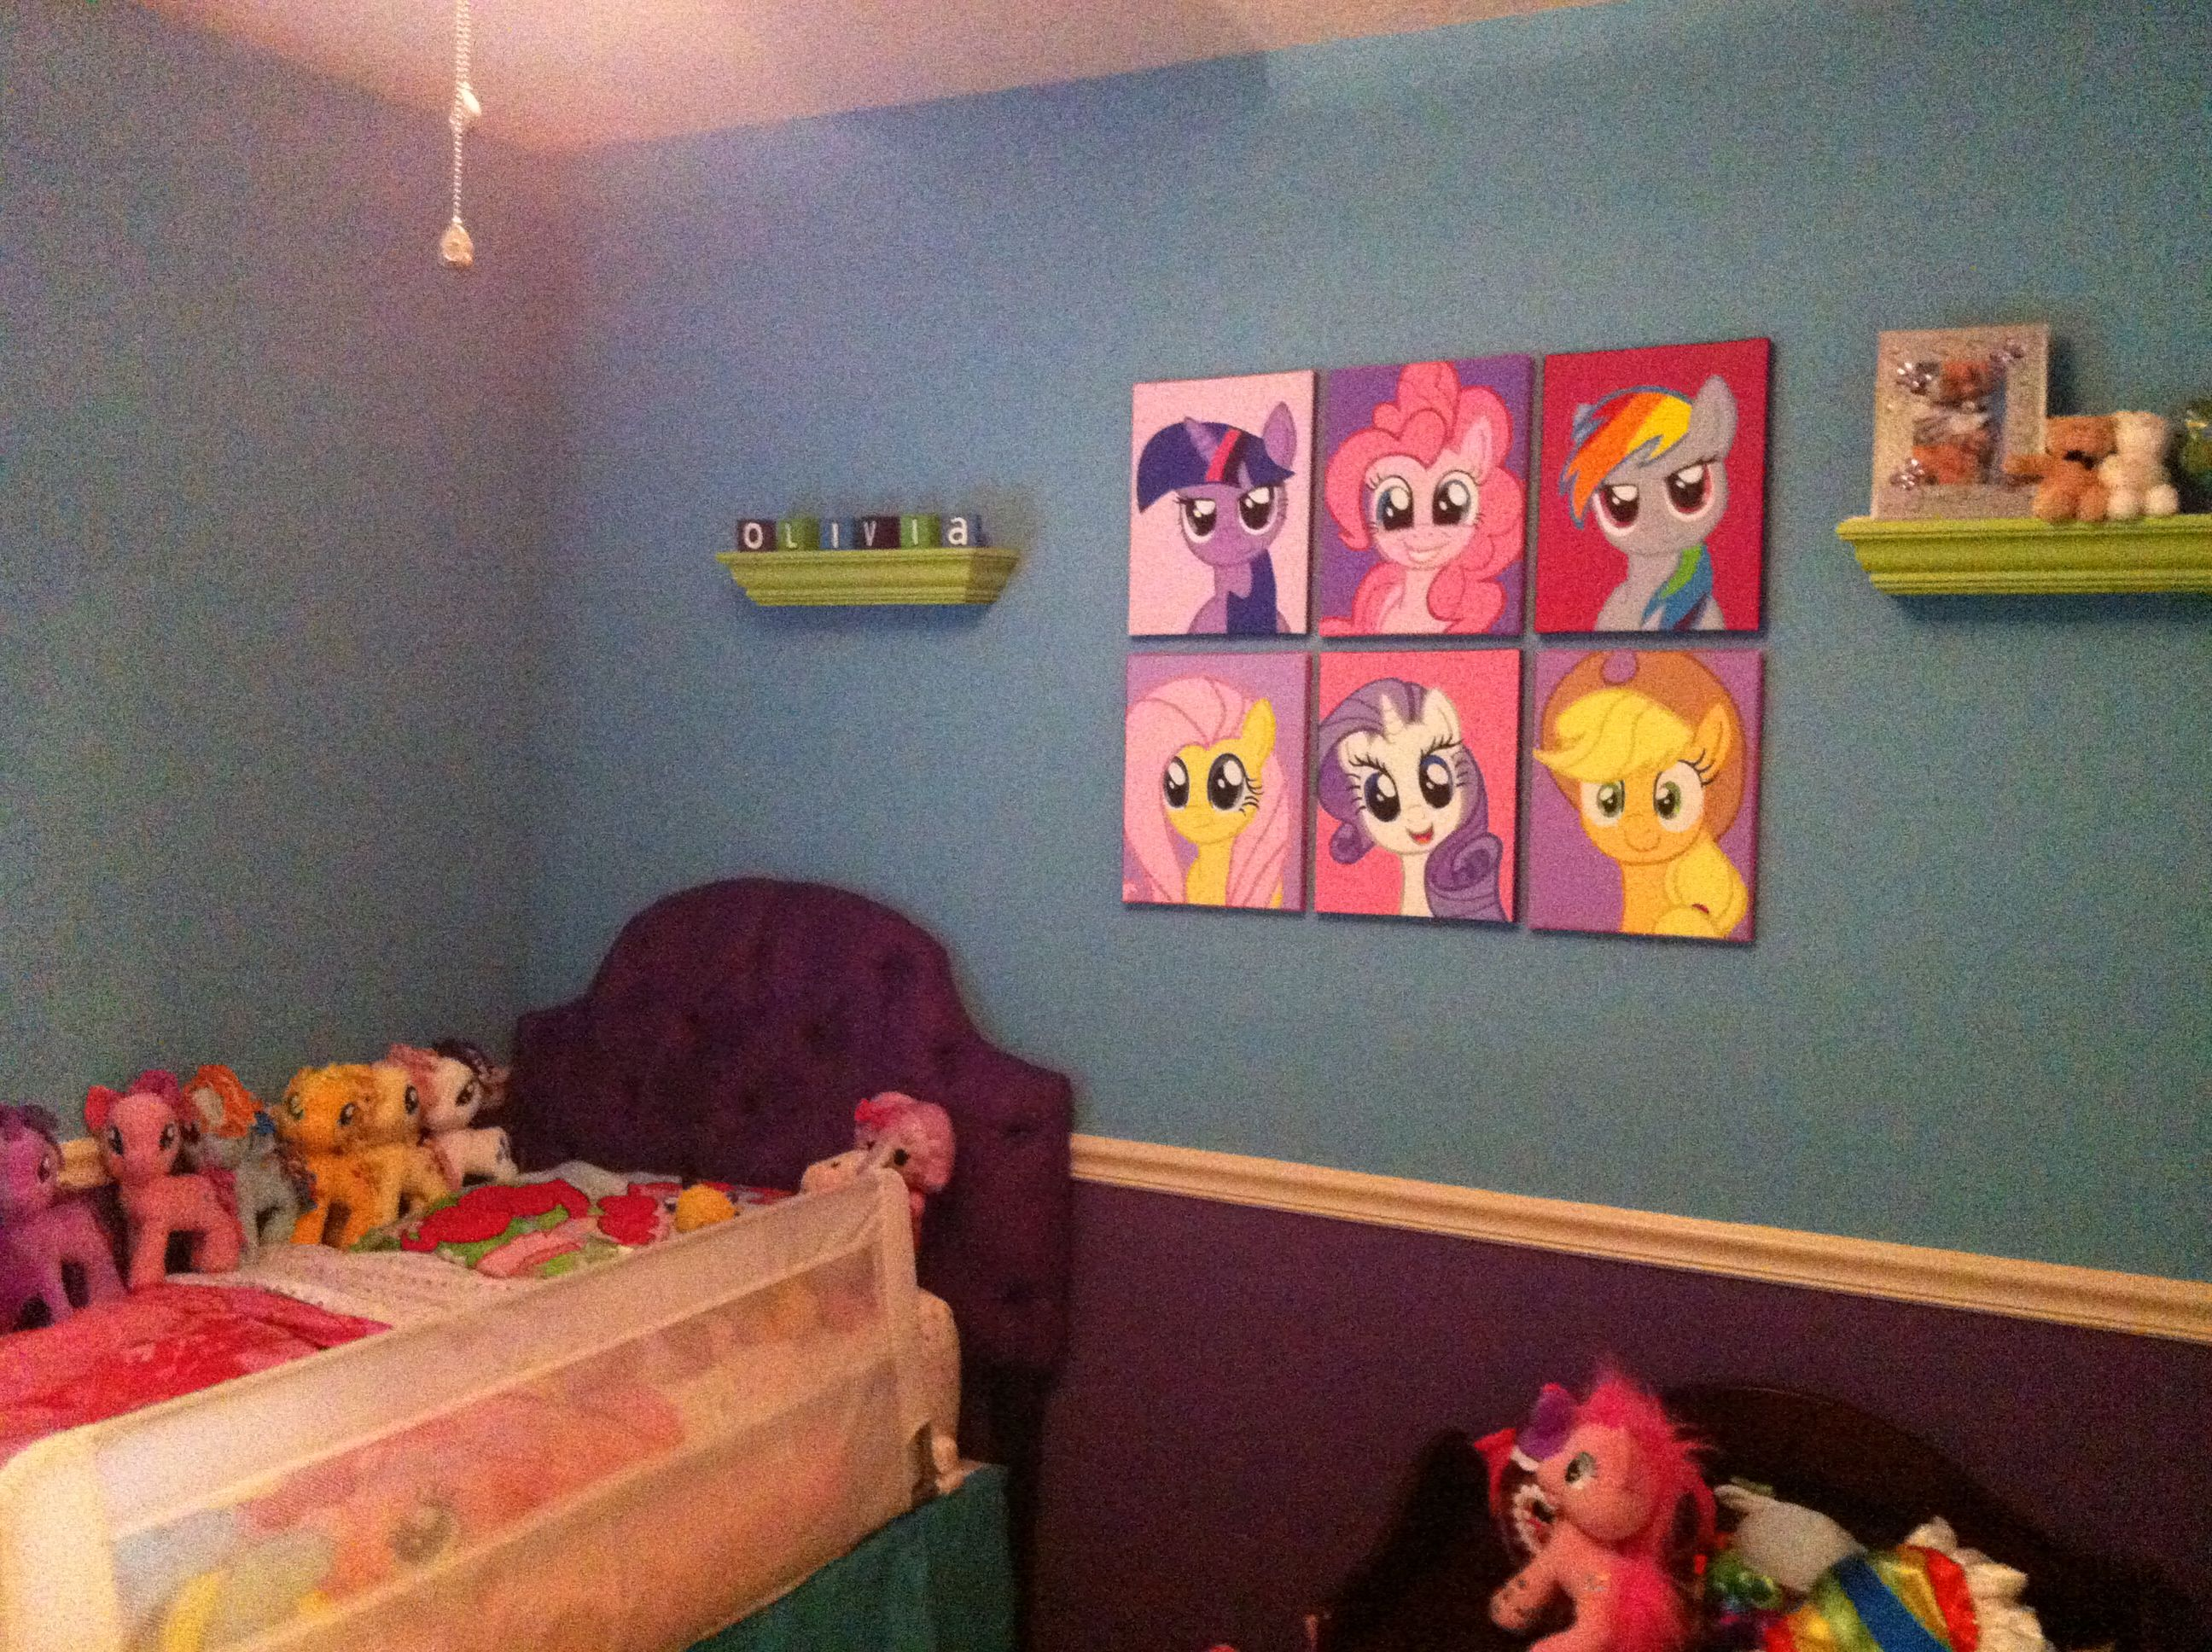 Pin By Nanalee Underhill On Olivia Decorating My Little Pony